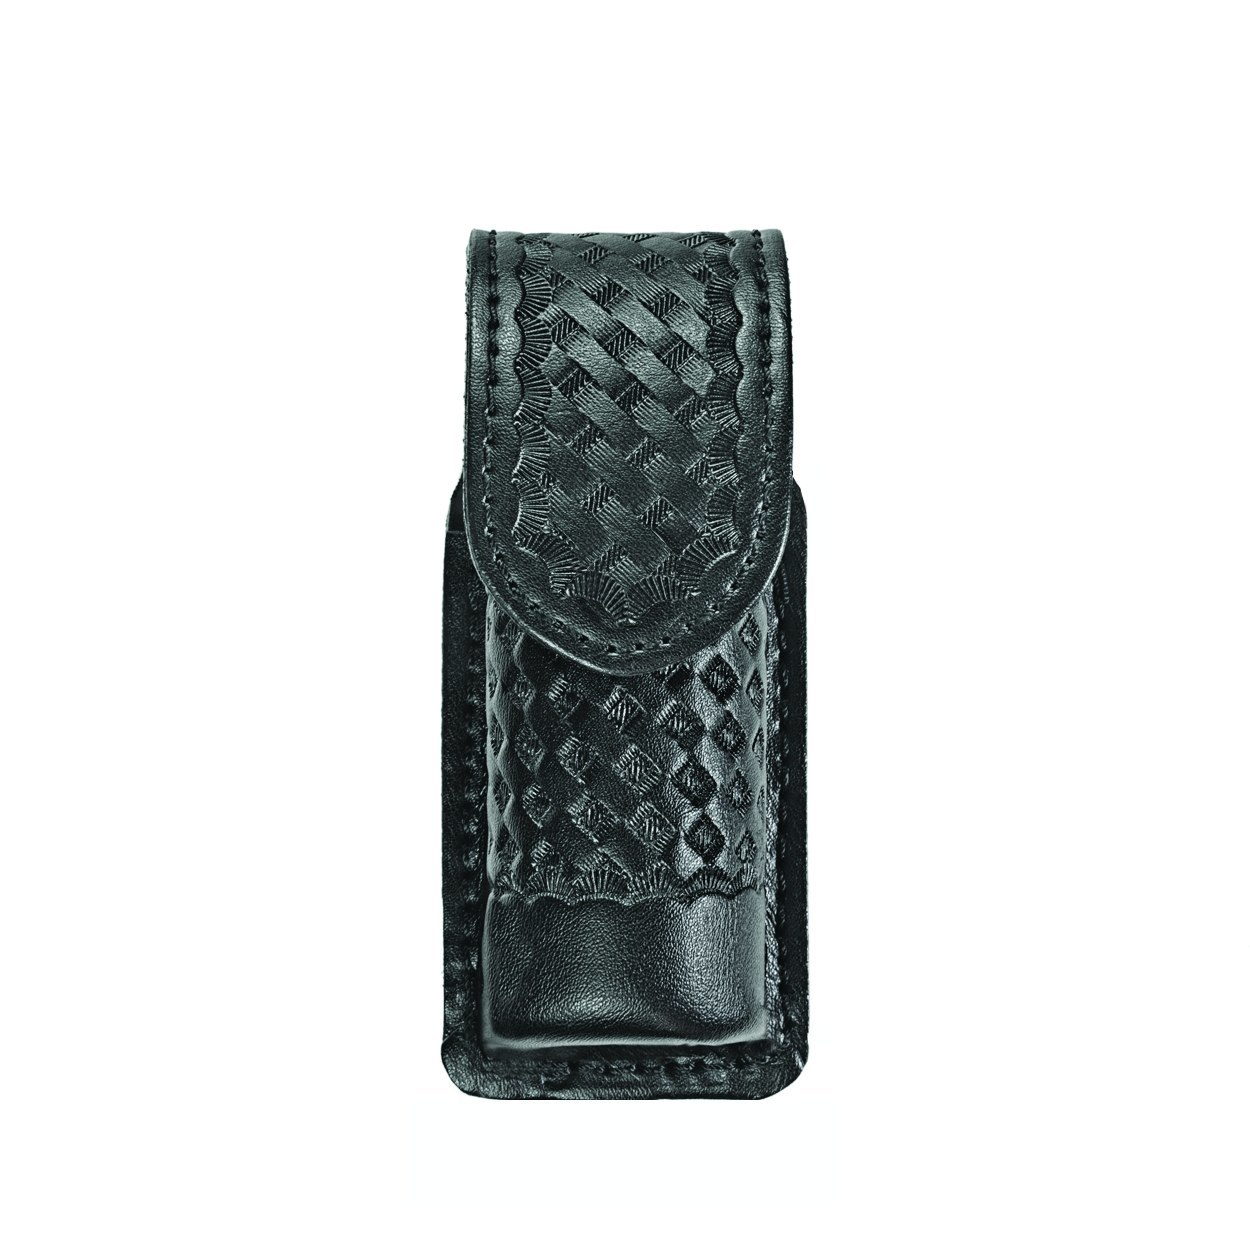 O.C. (Pepper) Spray Case, Small, MK3 (MK2,6), AirTek, BW, Hidden Snap-